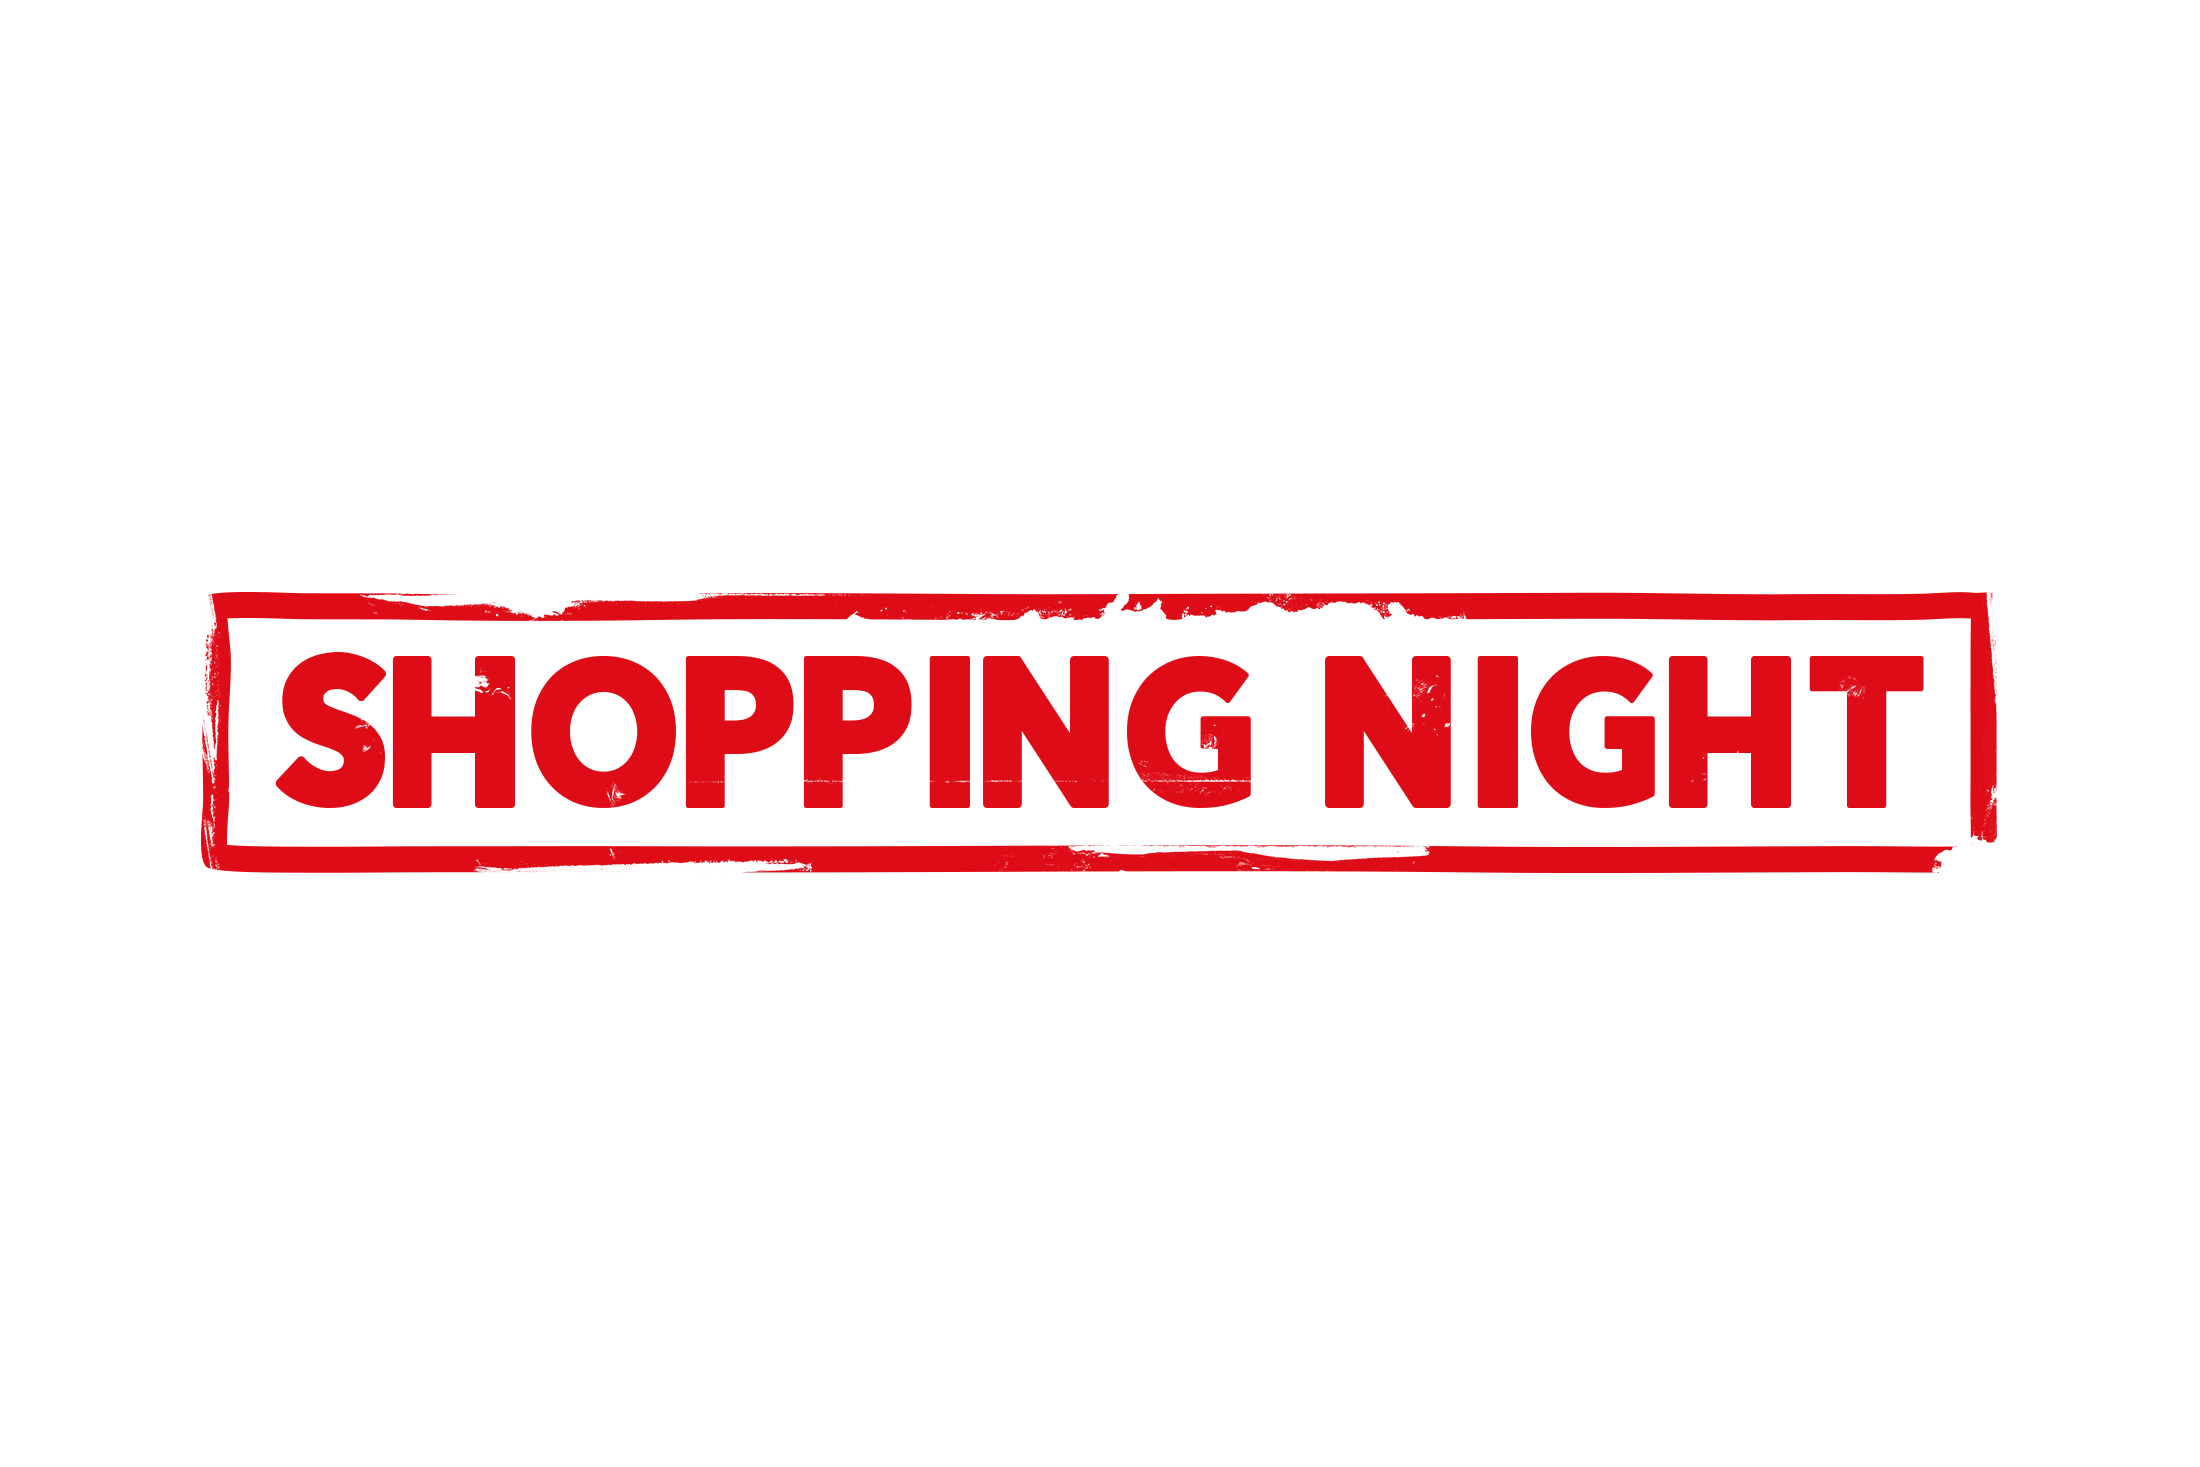 Shopping night stamp PSD